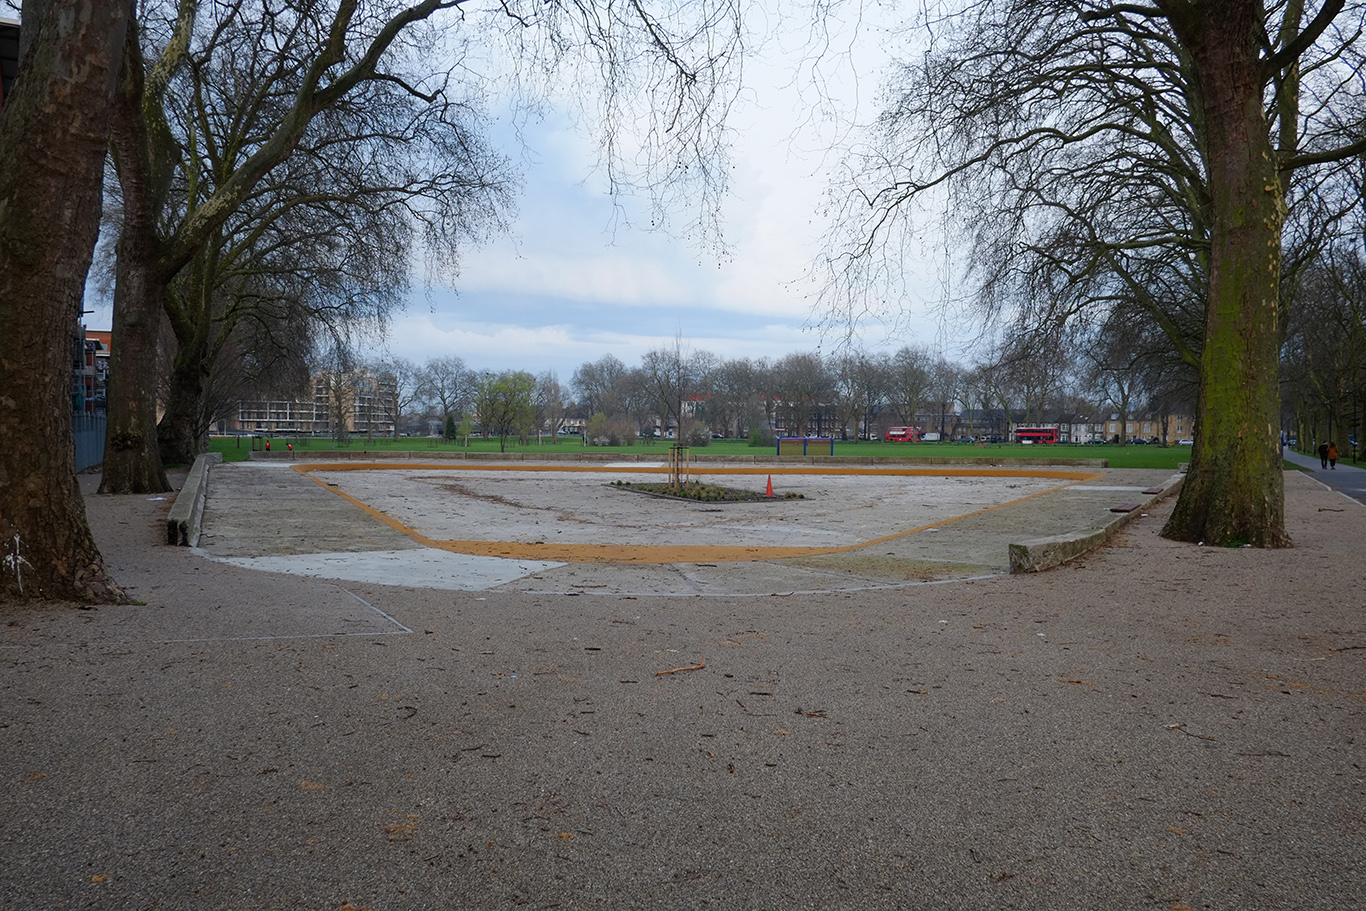 Cine-Theatre Millfields Site The Old Paddling Pool